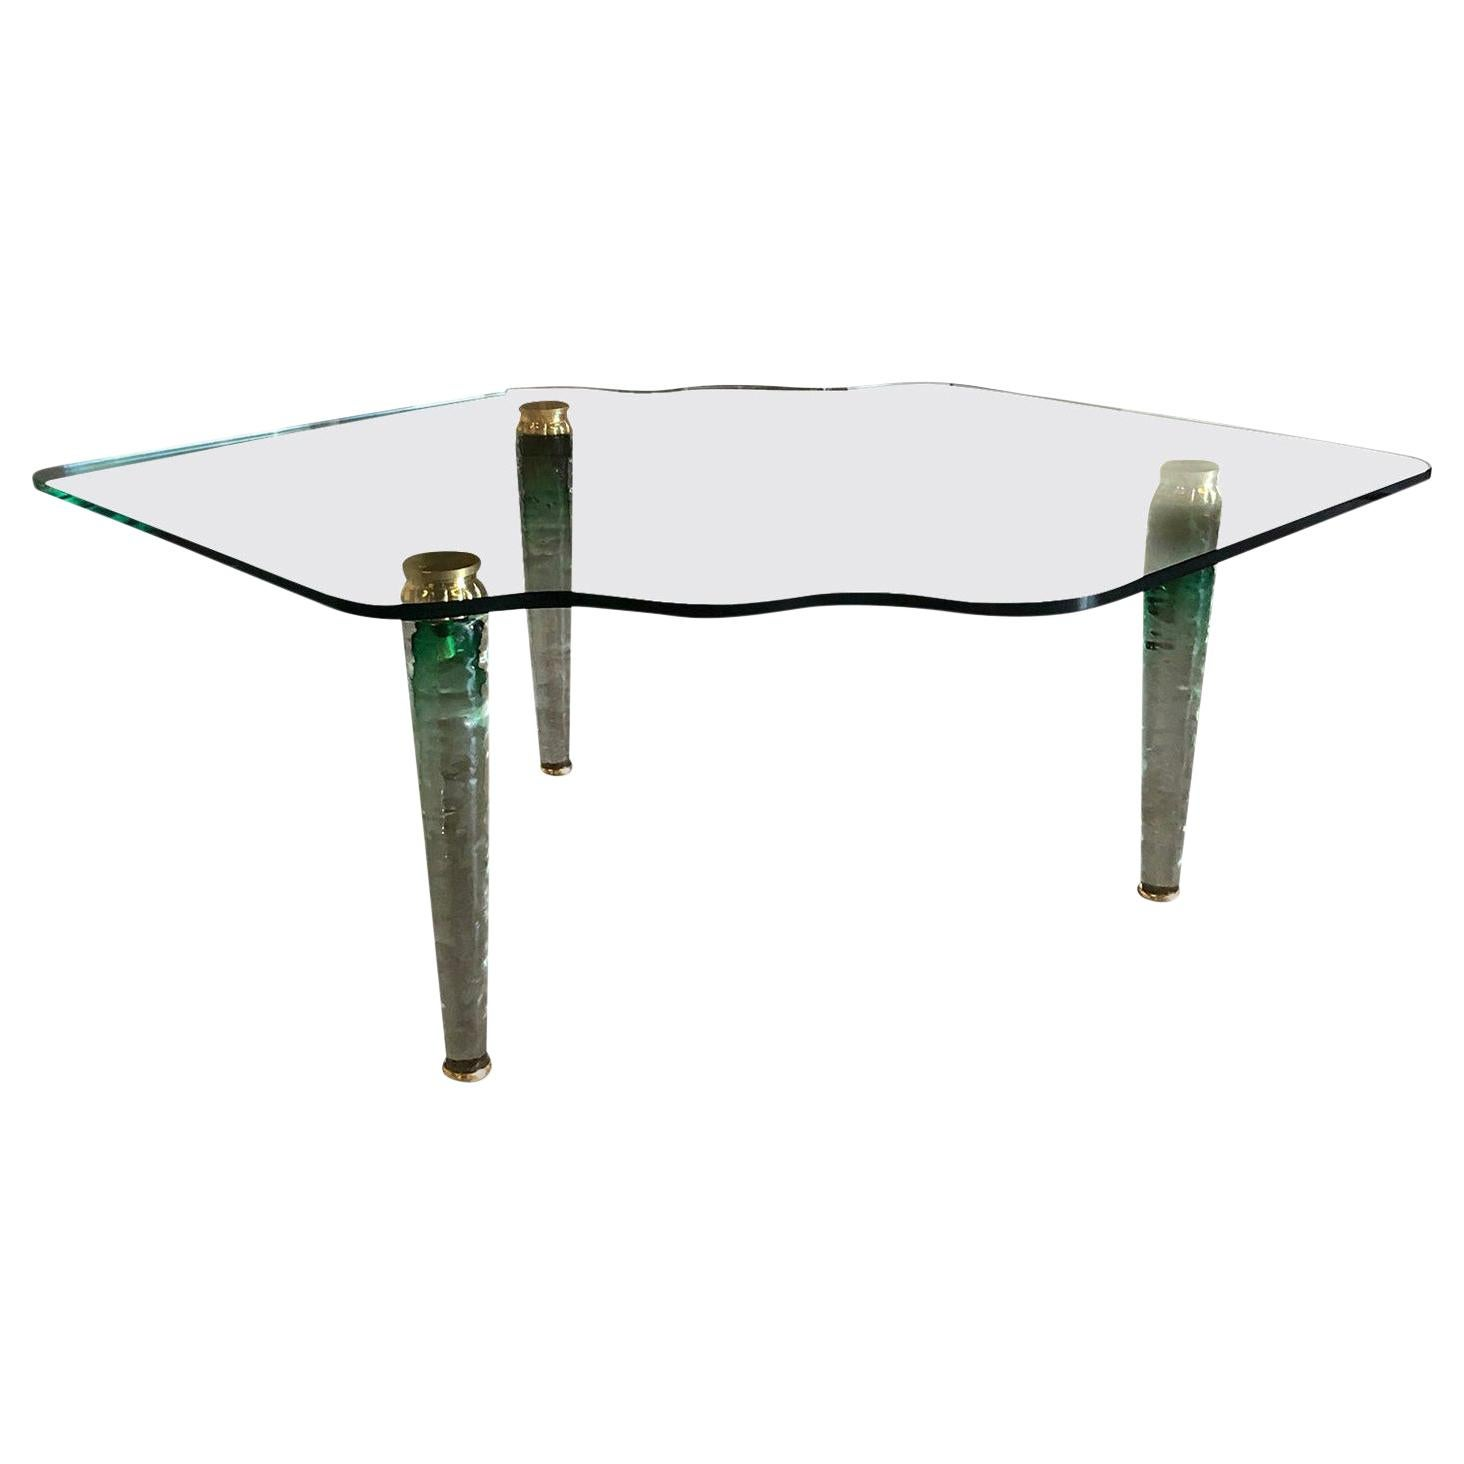 20th Century Italian Murano Glass Coffee Table in the Style of Danny Lane